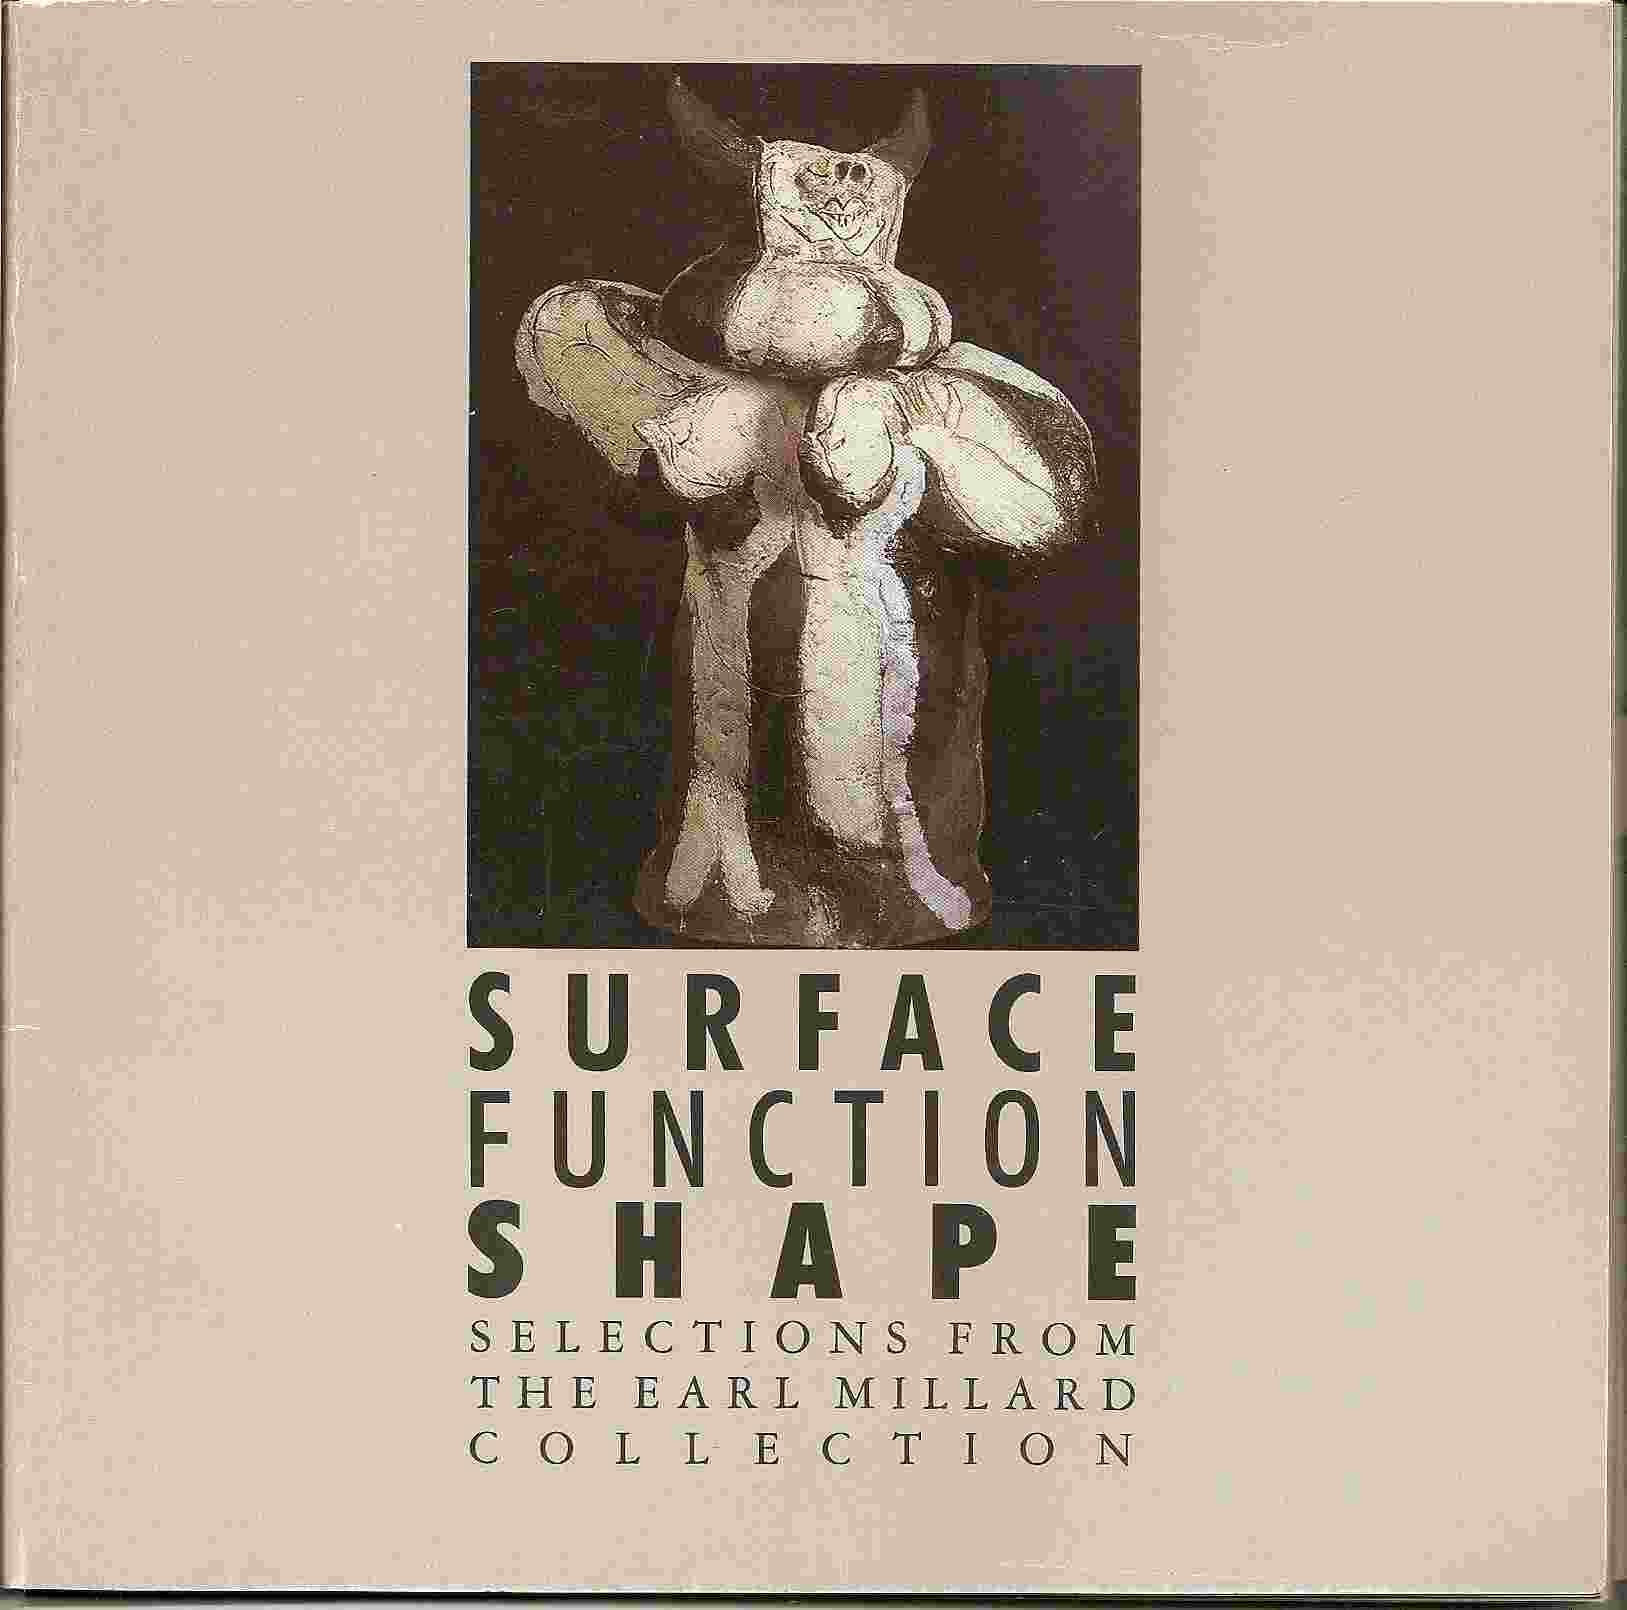 Image for Selections from the Earl Millard Collection; SURFACE FUNCTION SHAPE